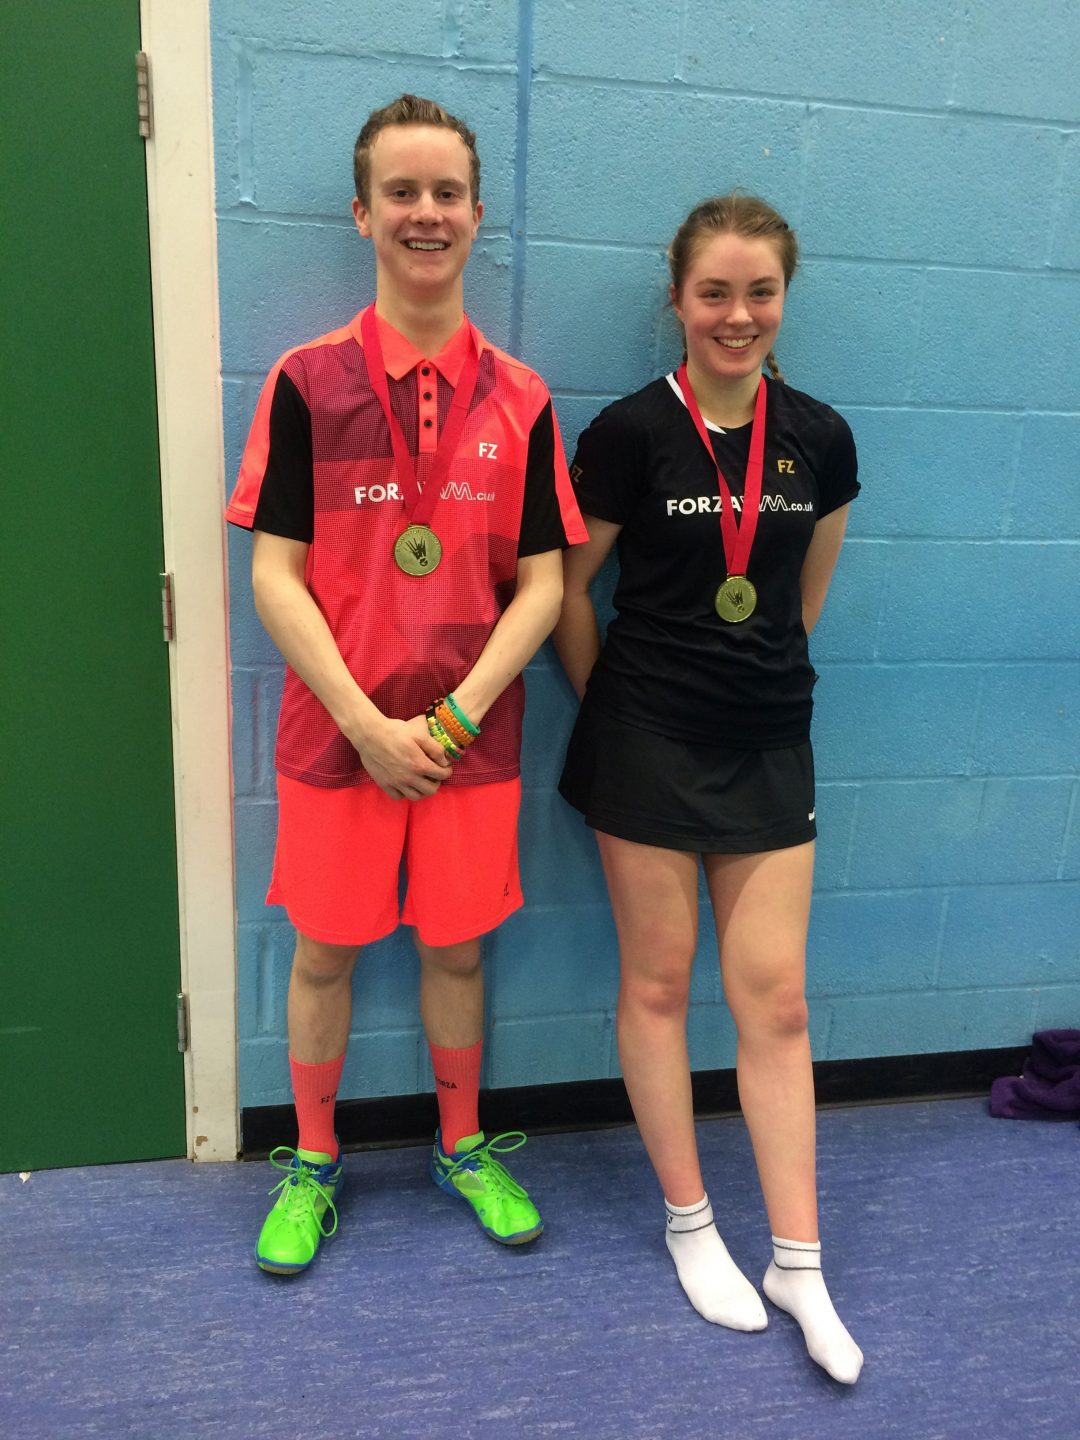 Zak-Ray with Mixed Doubles Partner, Megan Brierley